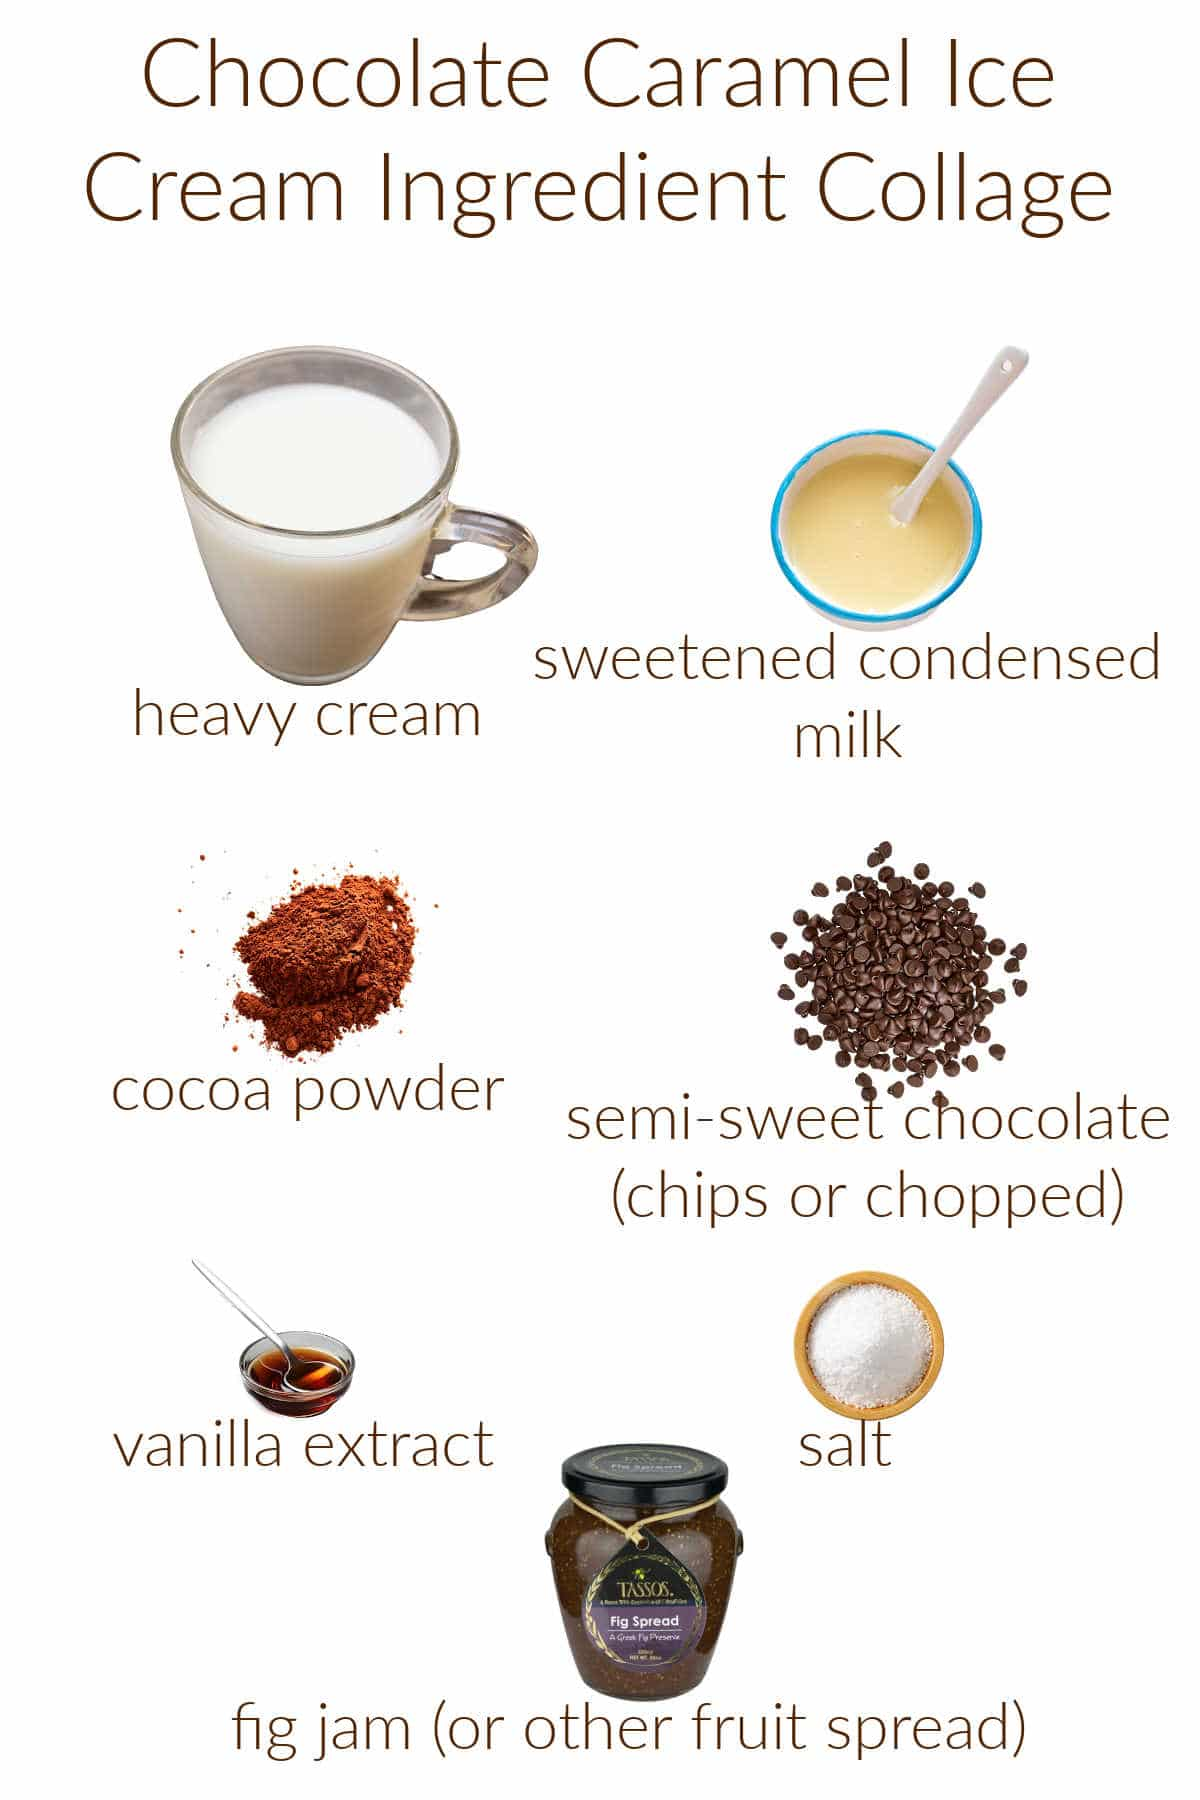 Collage of ingredients for making no-churn chocolate-caramel ice cream.